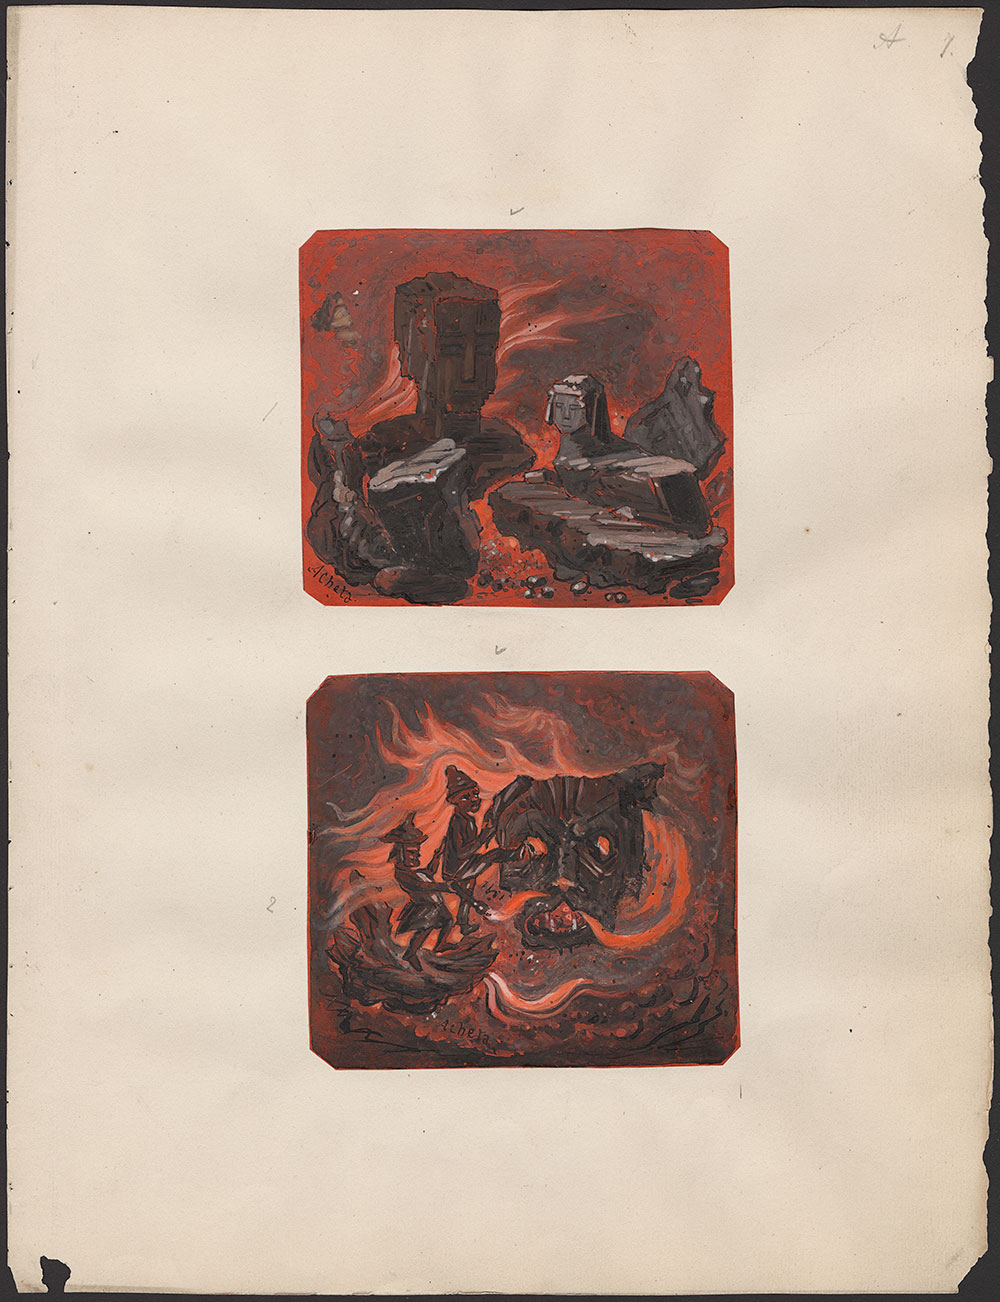 L. M. Budgen. Illustrations from Live Coals: or, Faces From the Fire.